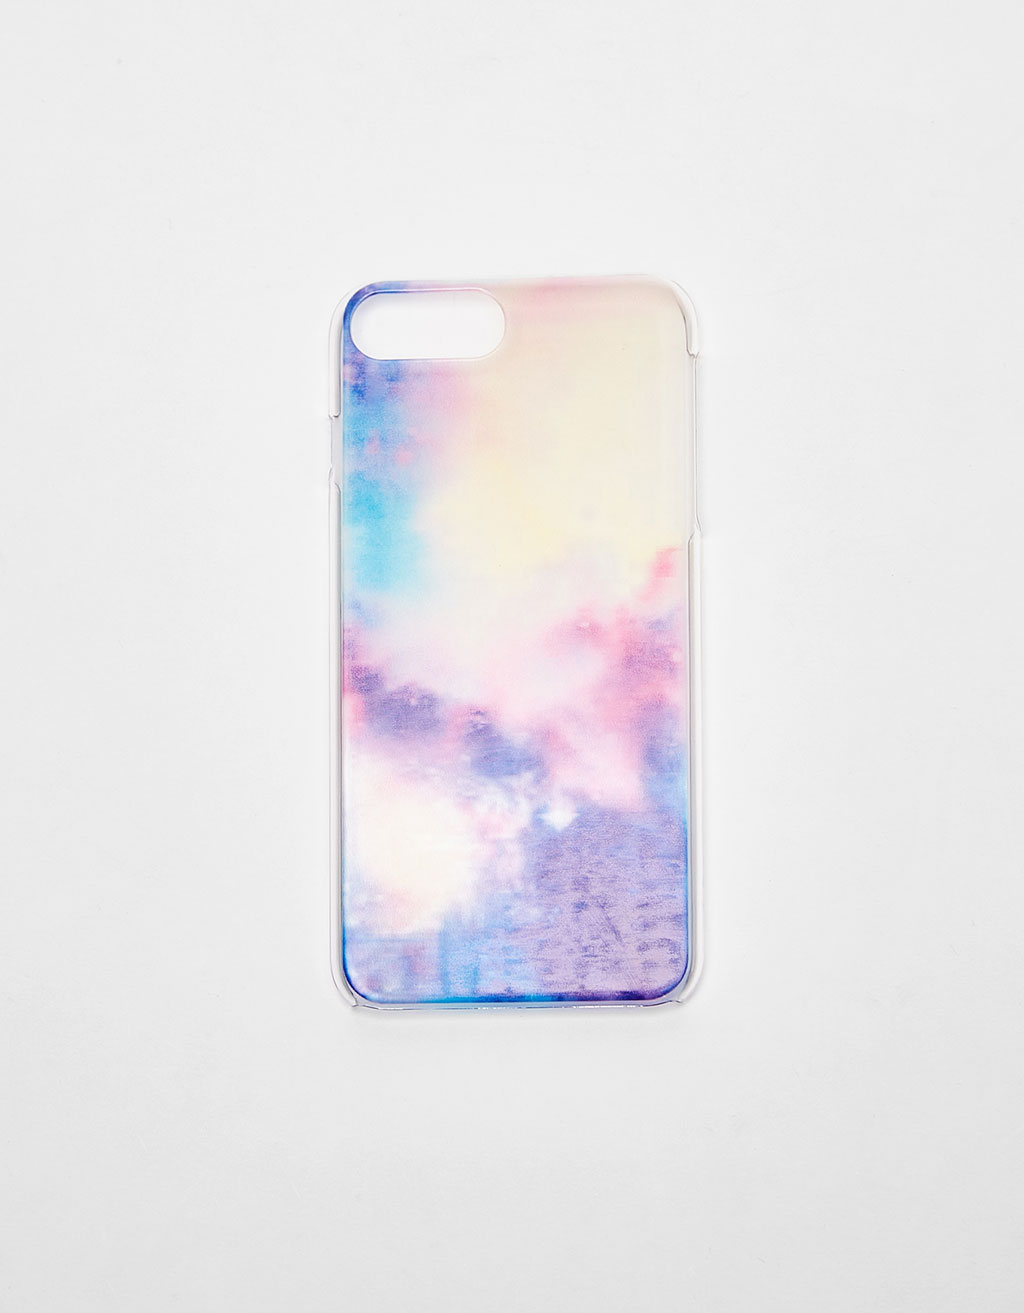 Transparent cosmic iPhone 6 plus/7 plus case